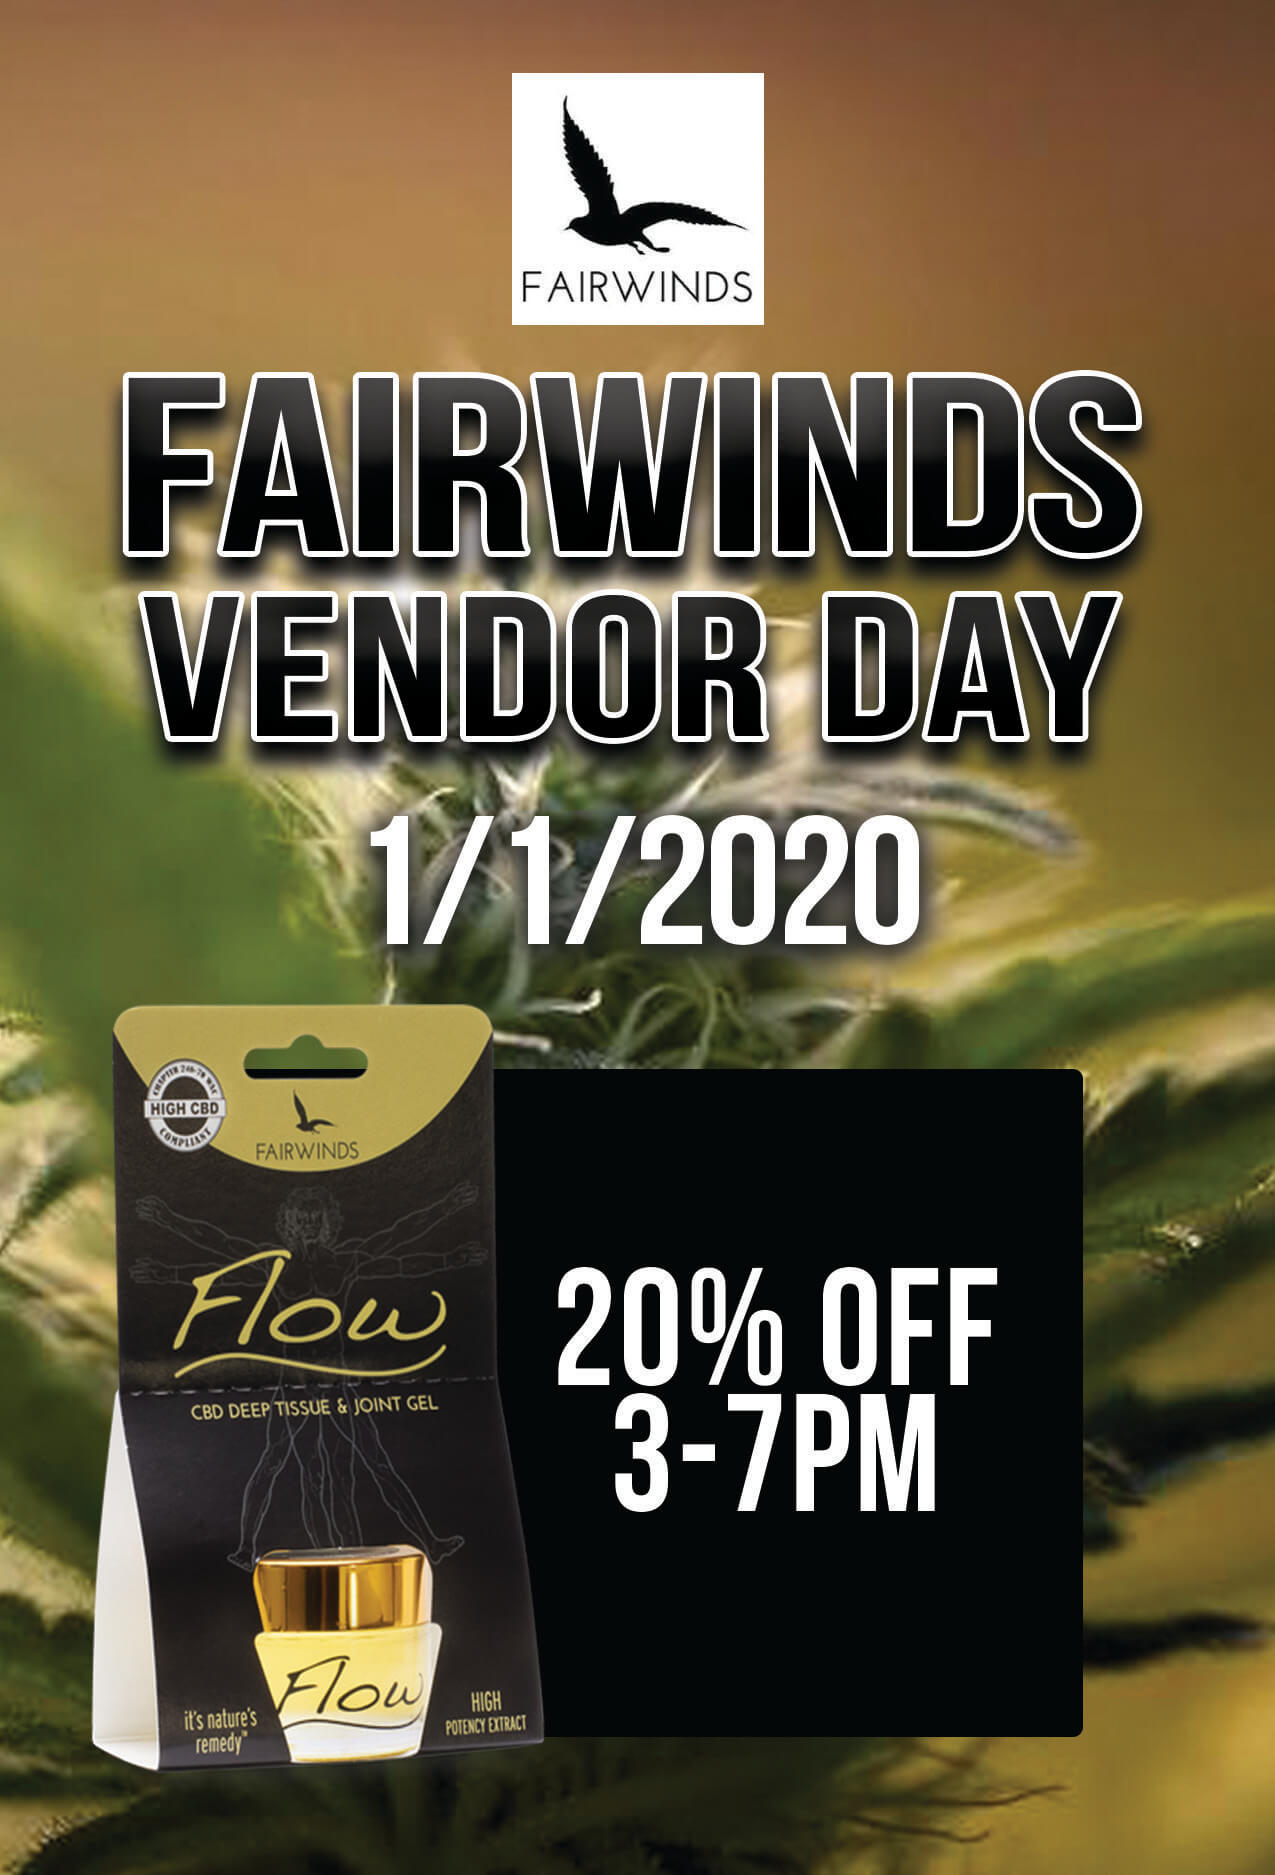 FAIRWINDS Vendor Day – 1/1/2020